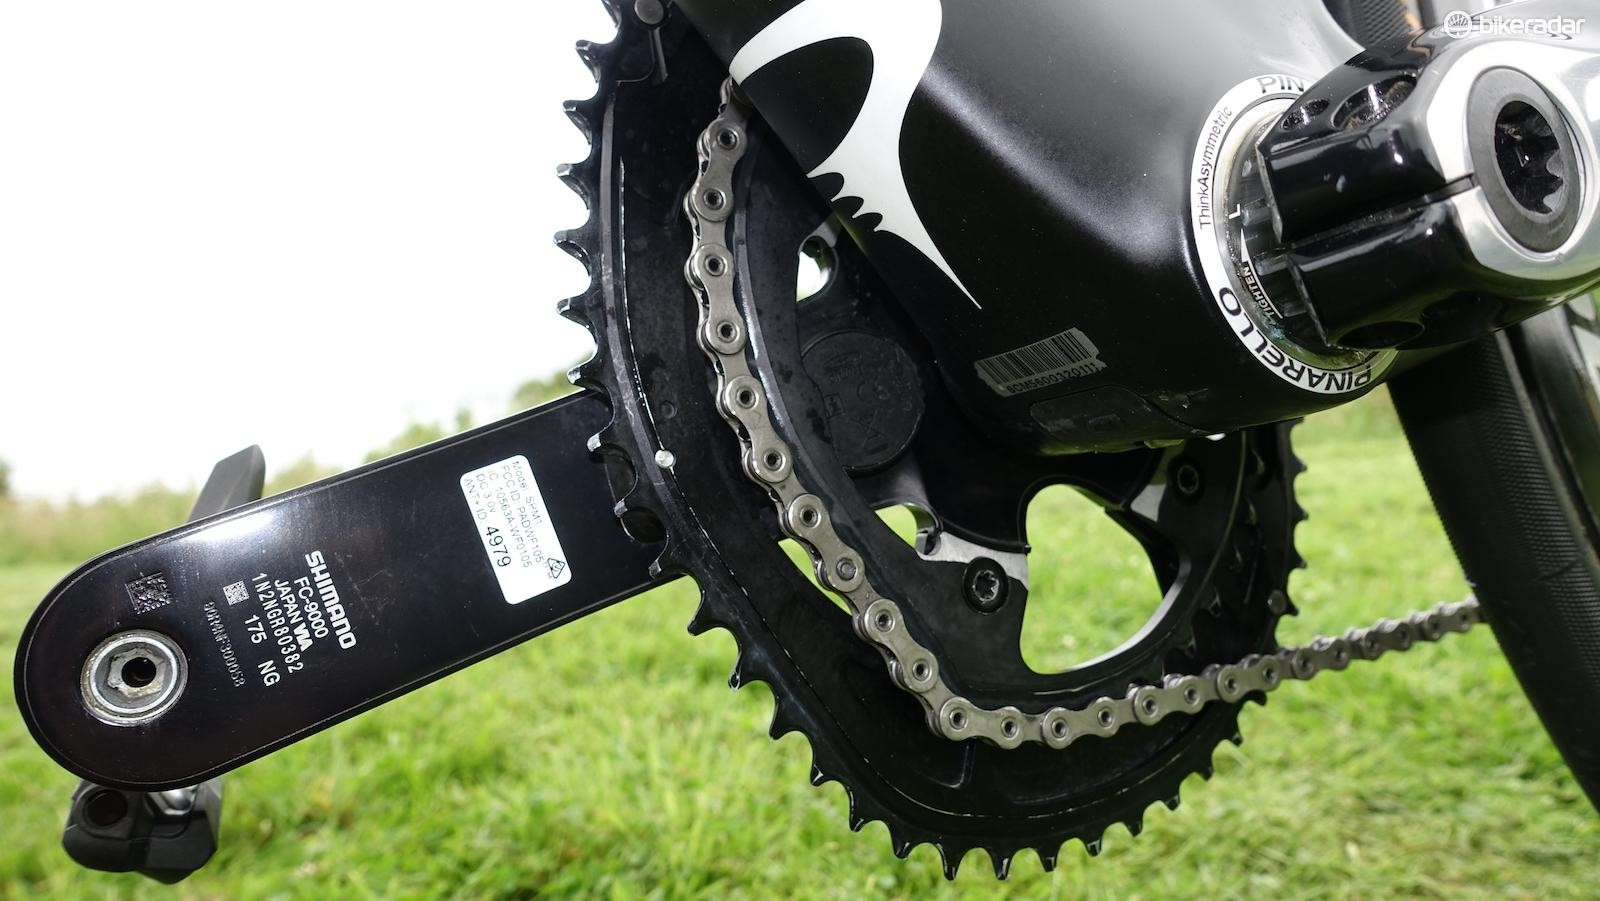 Froome and company use prototype dual-sided Stages power meters. You can also see that mechanics have filed down the inside edges on the inner chainring to better clear the chainstay